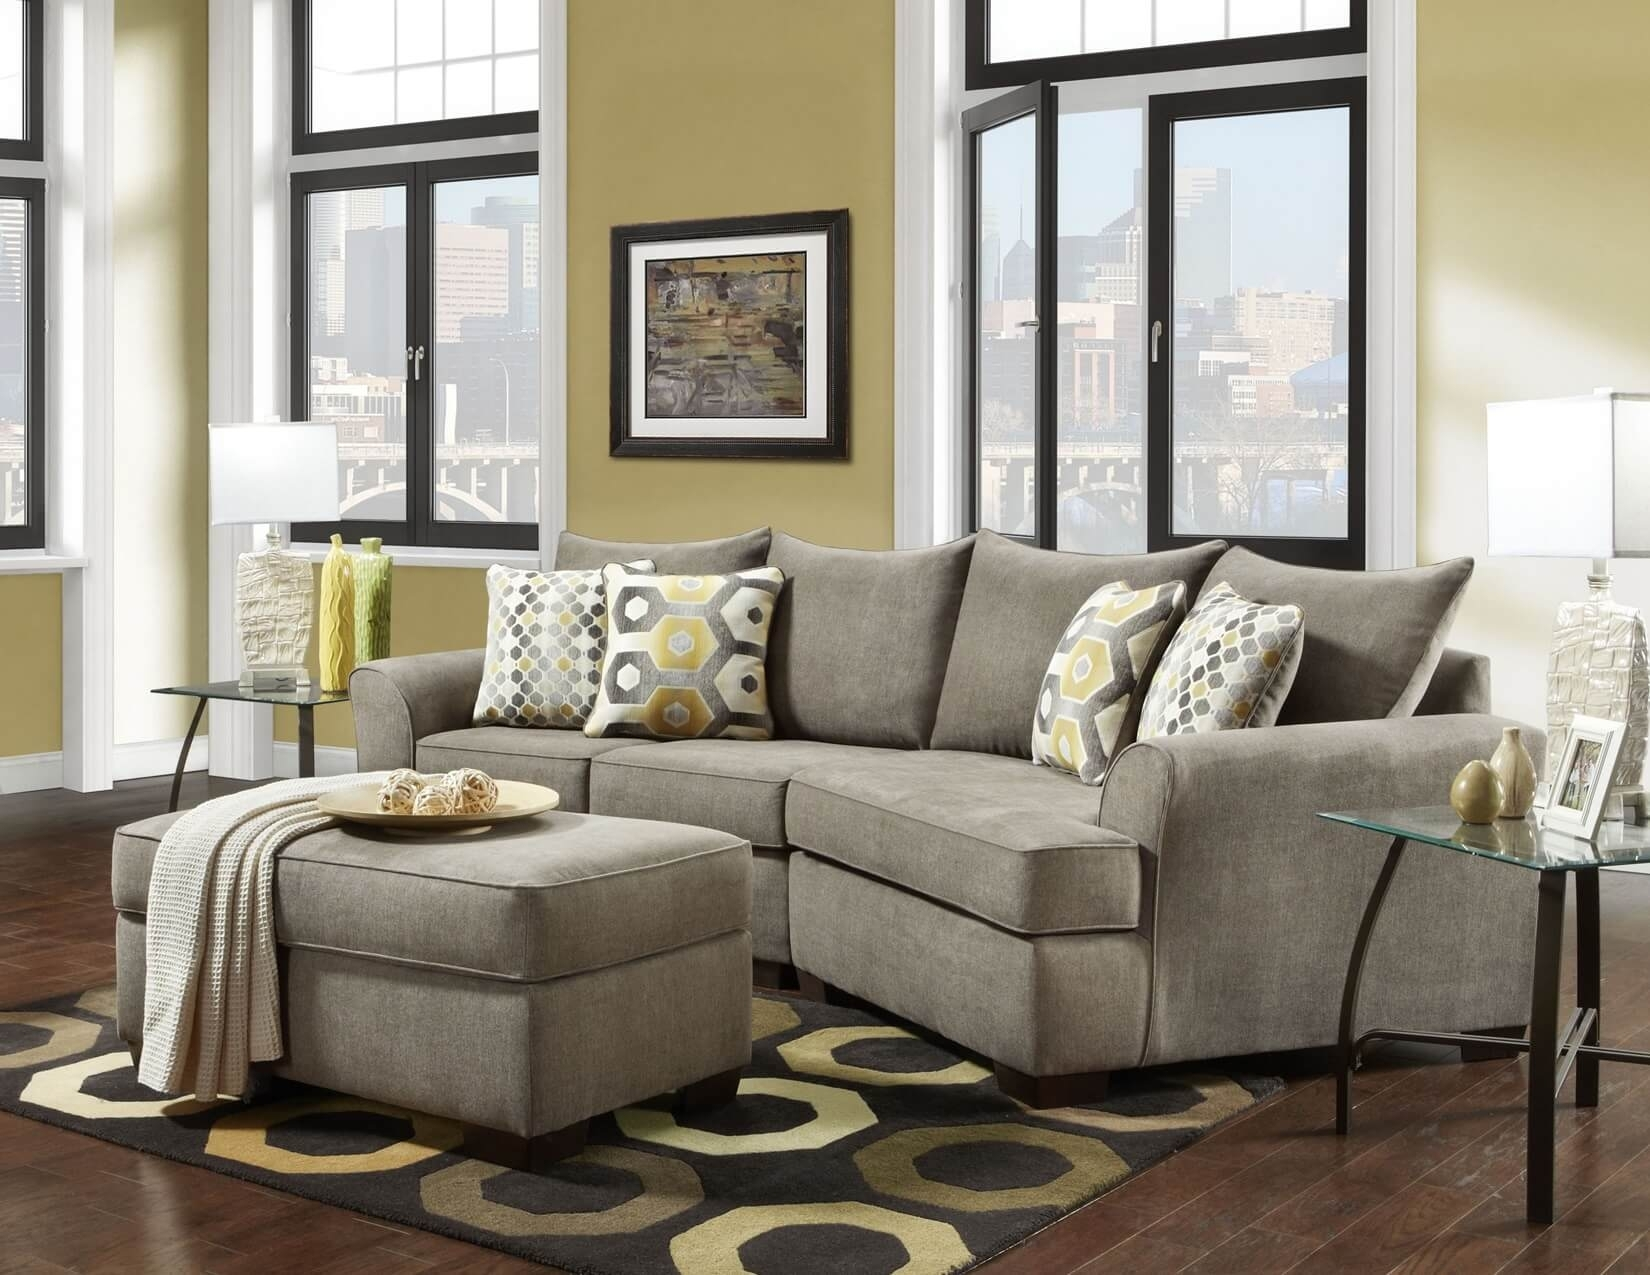 Essence Platinum 3 Pc Cuddler Sectional | Sectional Sofa Sets Regarding Cuddler Sectional Sofas (Photo 8 of 10)